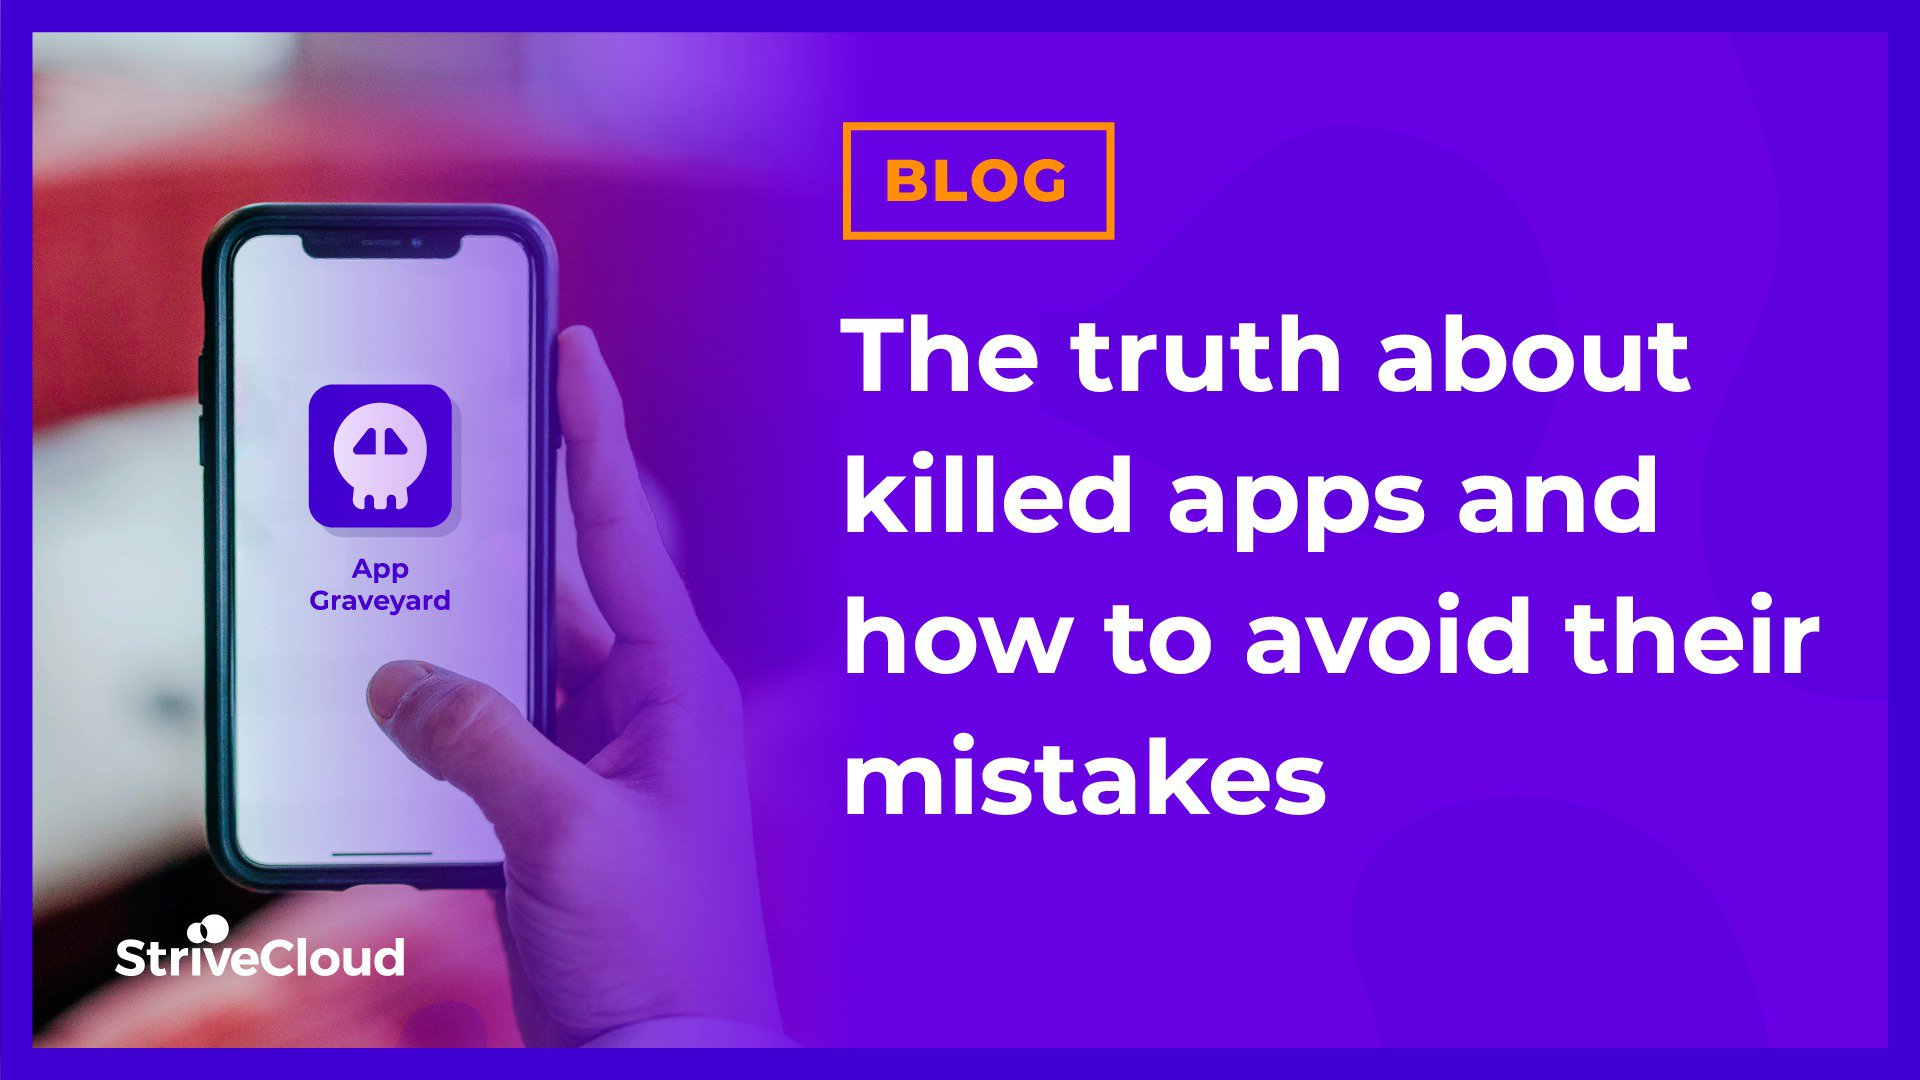 The truth about killed apps and how to avoid their mistakes